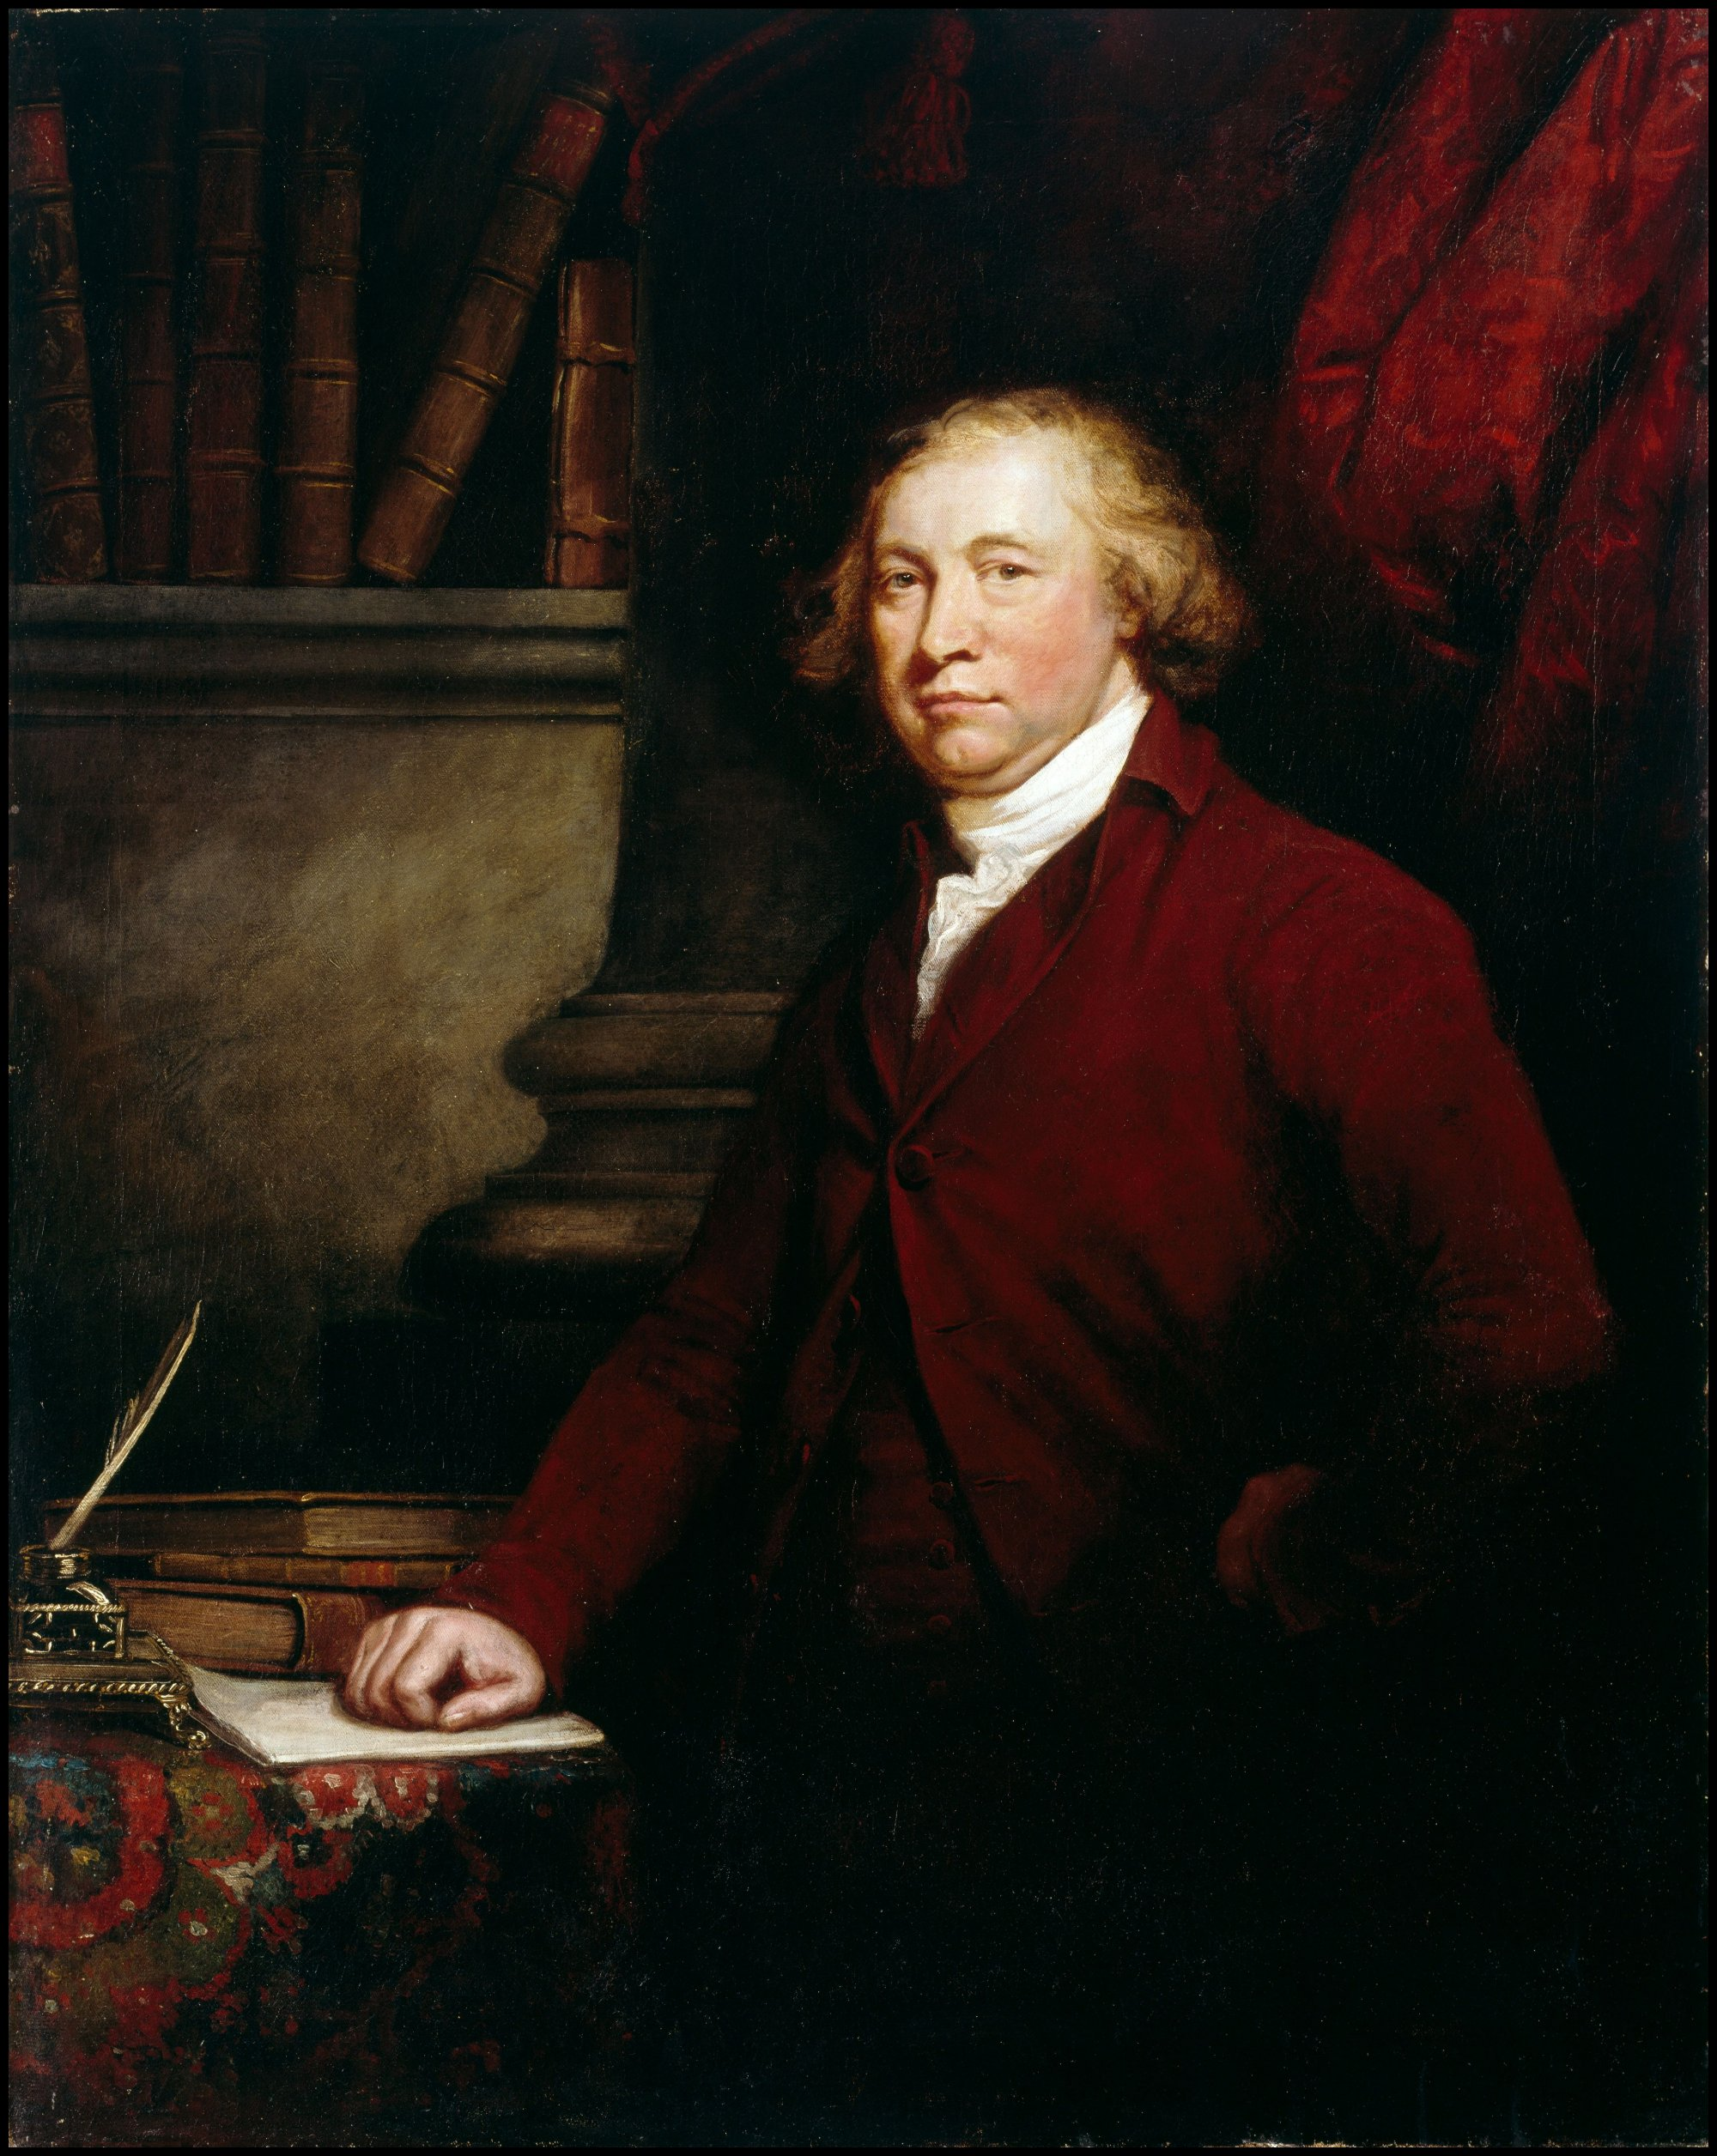 edmund burke sublime essay Edmund burke - biography society and a philosophical enquiry into the origin of our ideas of the sublime and basis of burke's political thought: an essay.